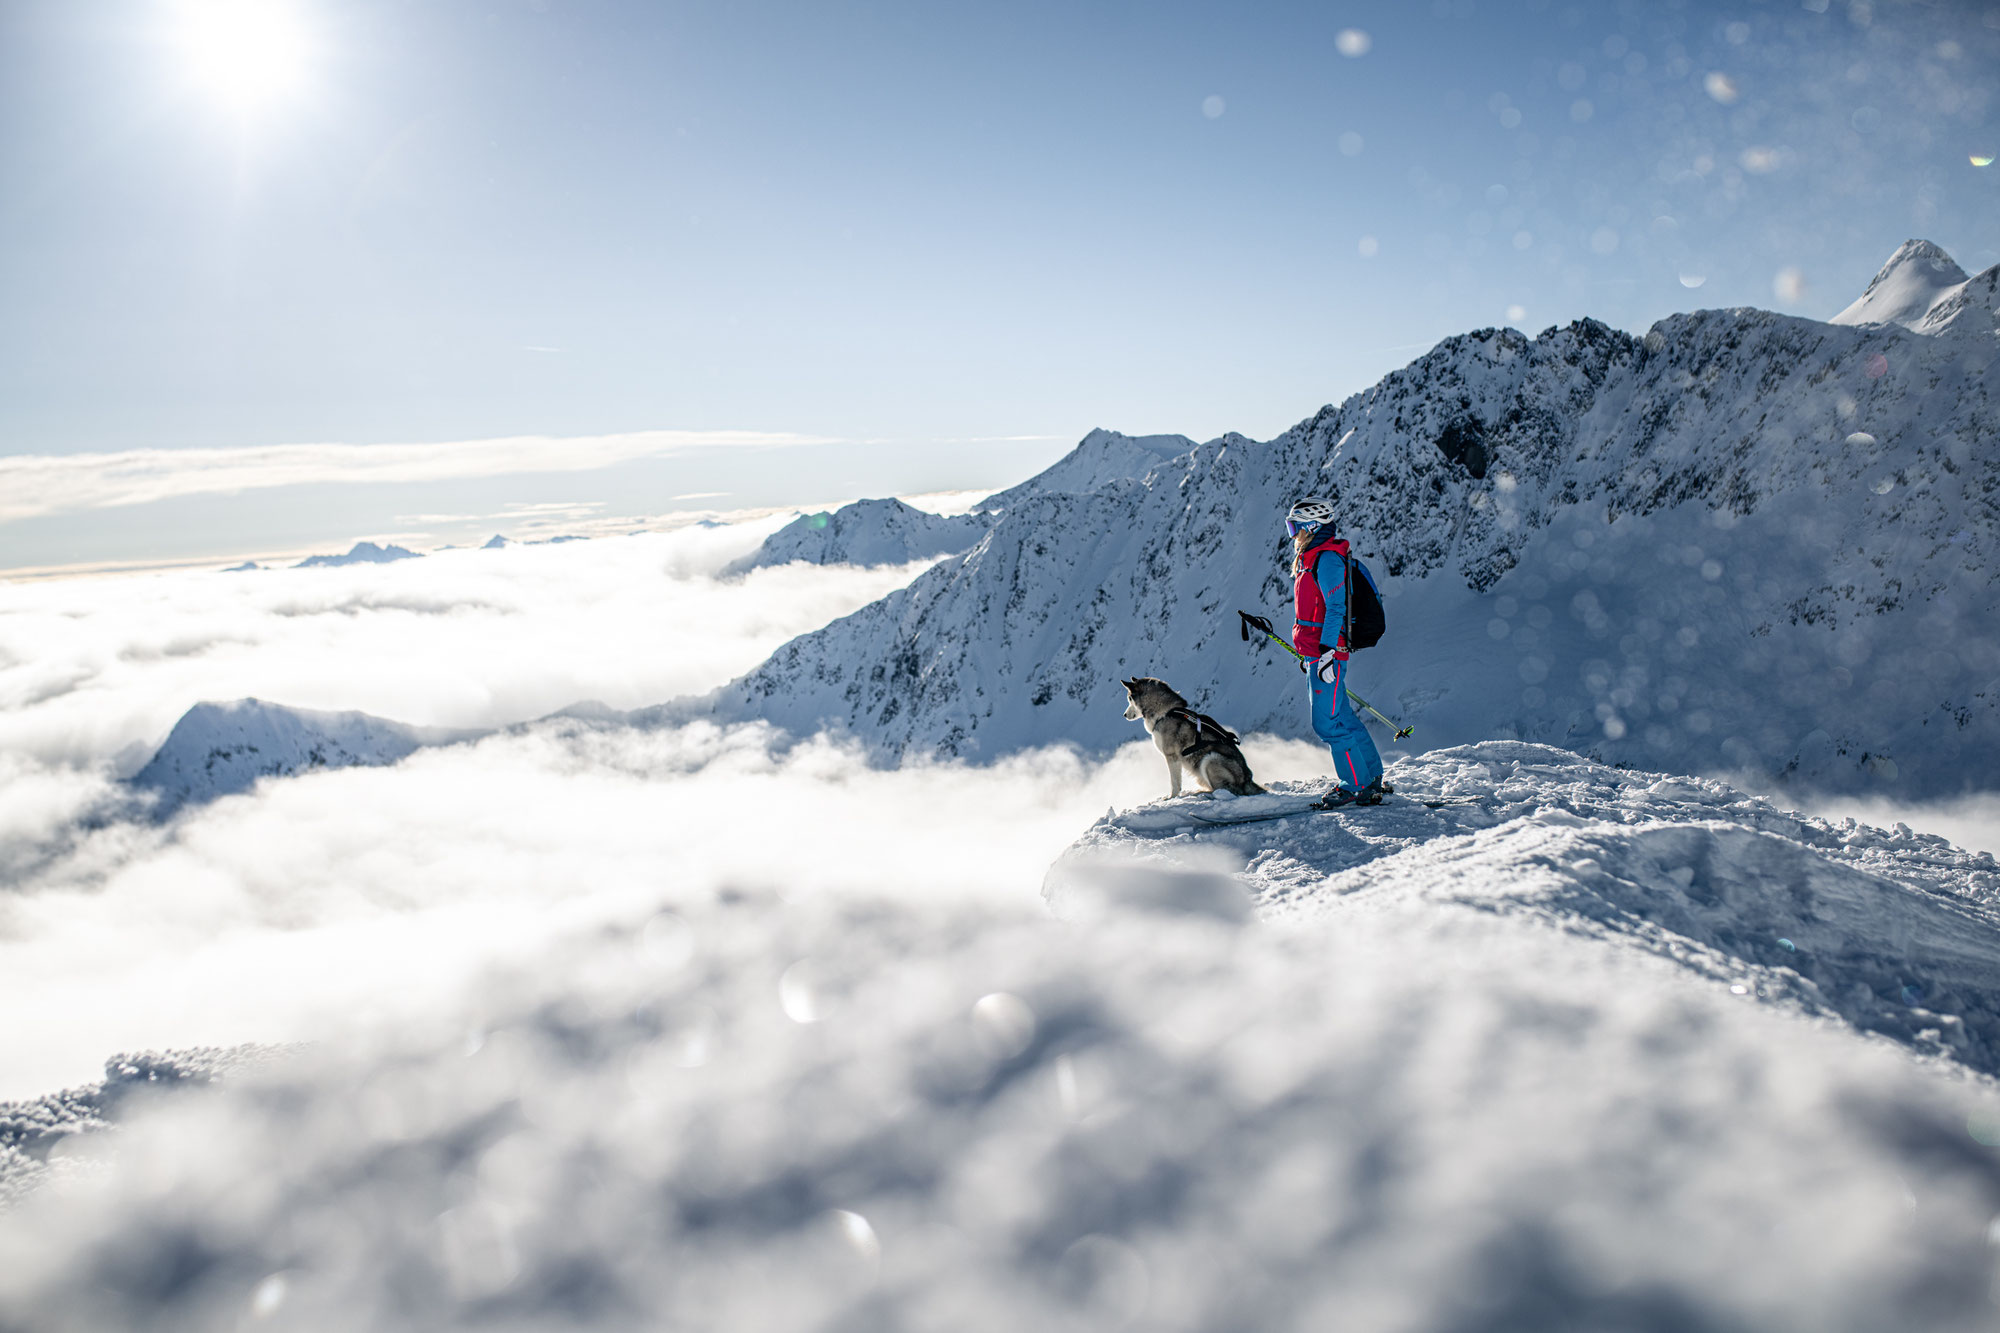 Ski touring and mountaineering with a dog